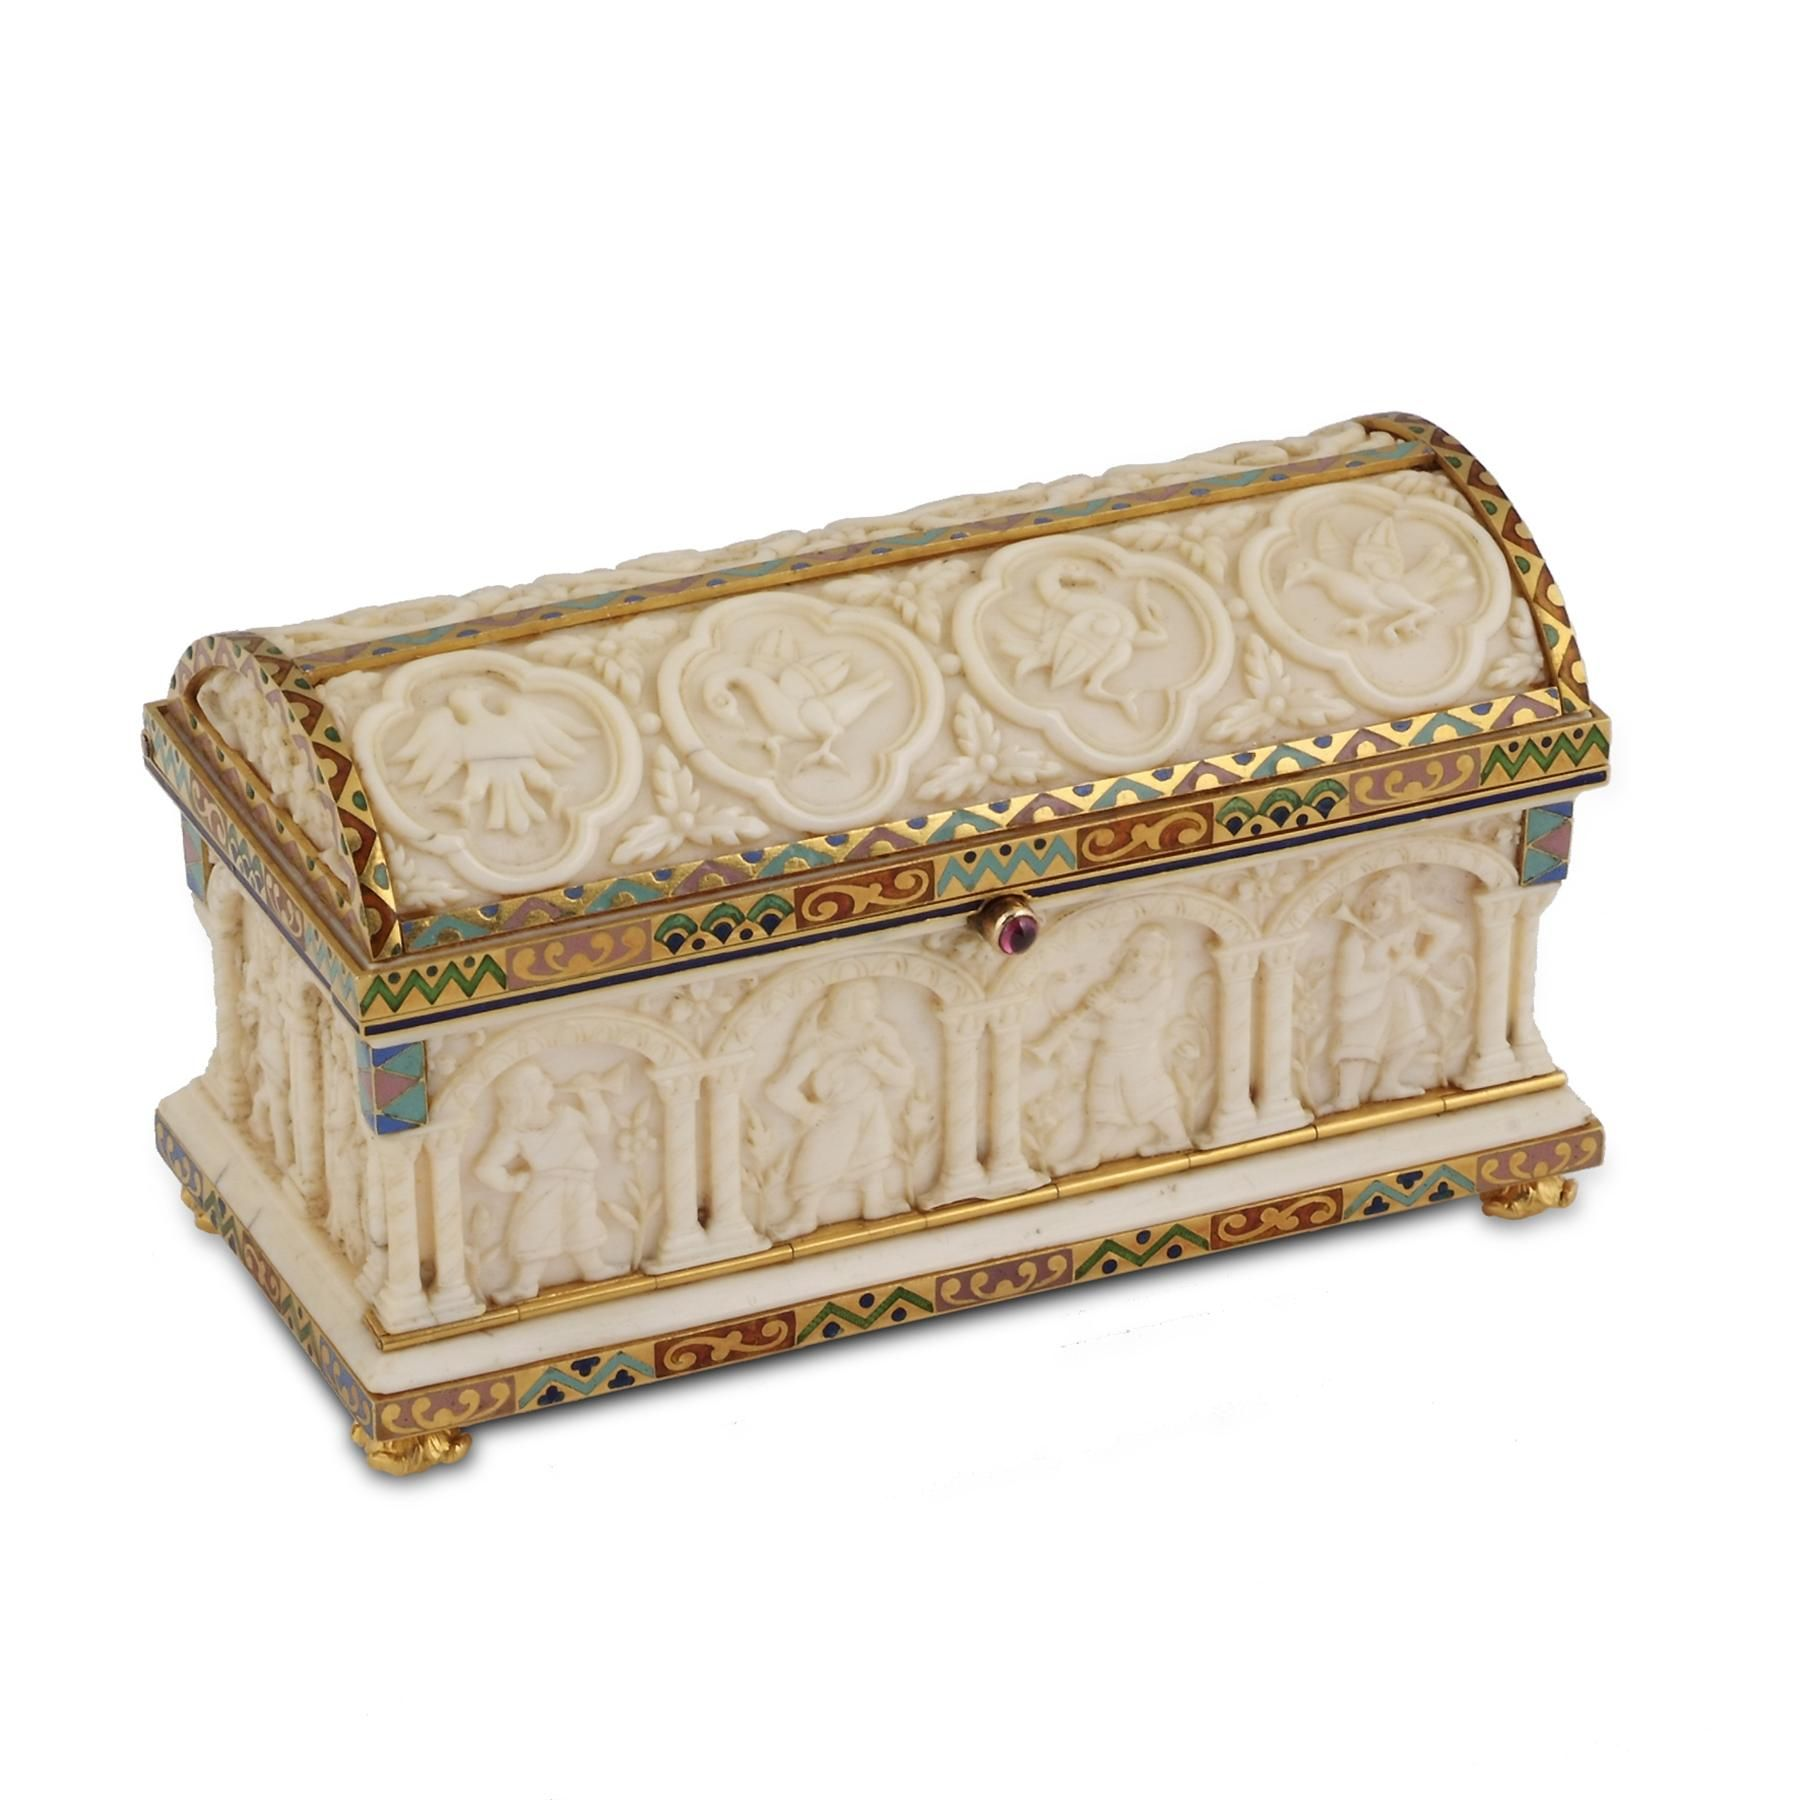 BOUCHERON. AN ENAMEL AND IVORY STAMP BOX. Designed as a stylised sarcophagus, the arched ivory lid carved with eight bird motifs with foliate accents, the ivory base carved with a series of musician and dancing figures each under an arch, embellished with floral accents, the yellow gold base and structural lid settings applied with red-, teal- and blue-coloured champlevé enamel, the ruby push-piece opening to reveal three ivory compartments.  Price:£50,000